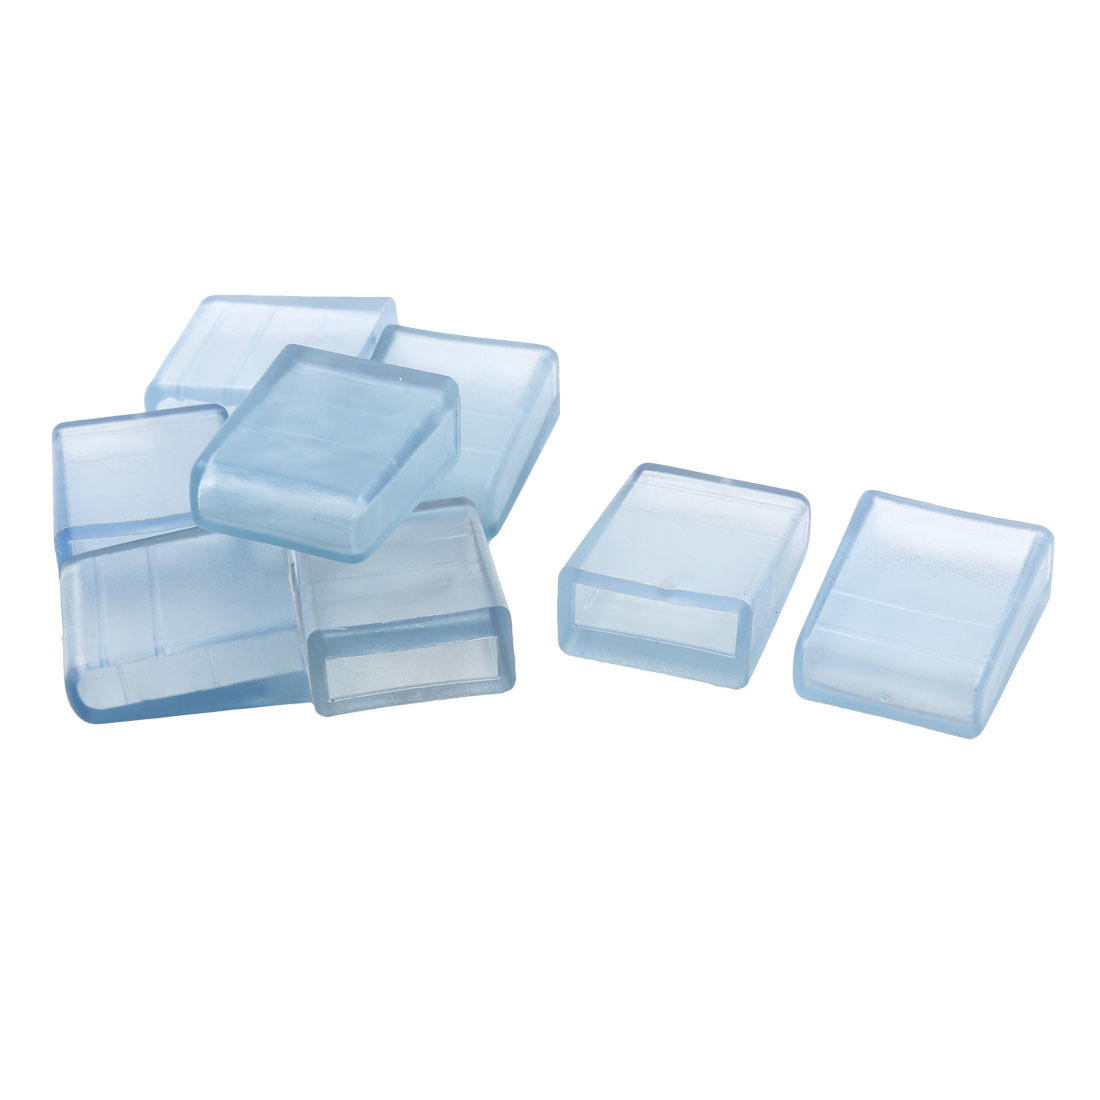 Home Rubber Furniture Foot Cover Pad Cushion Protector Clear Blue 9 x 31mm 8pcs